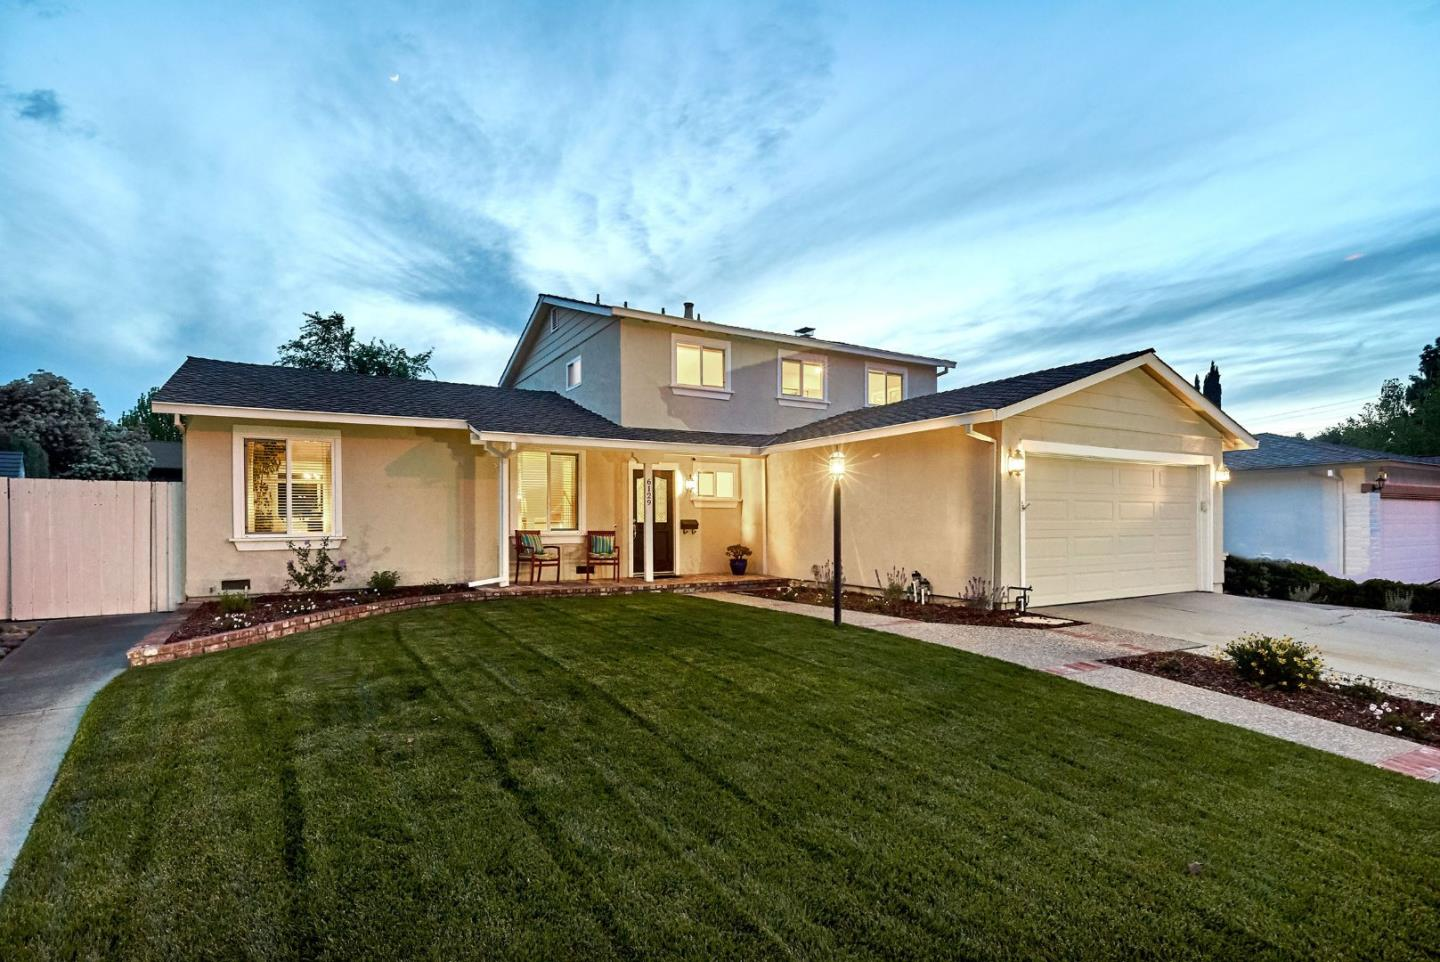 Property for sale at 6129 Cecala DR, San Jose,  CA 95120